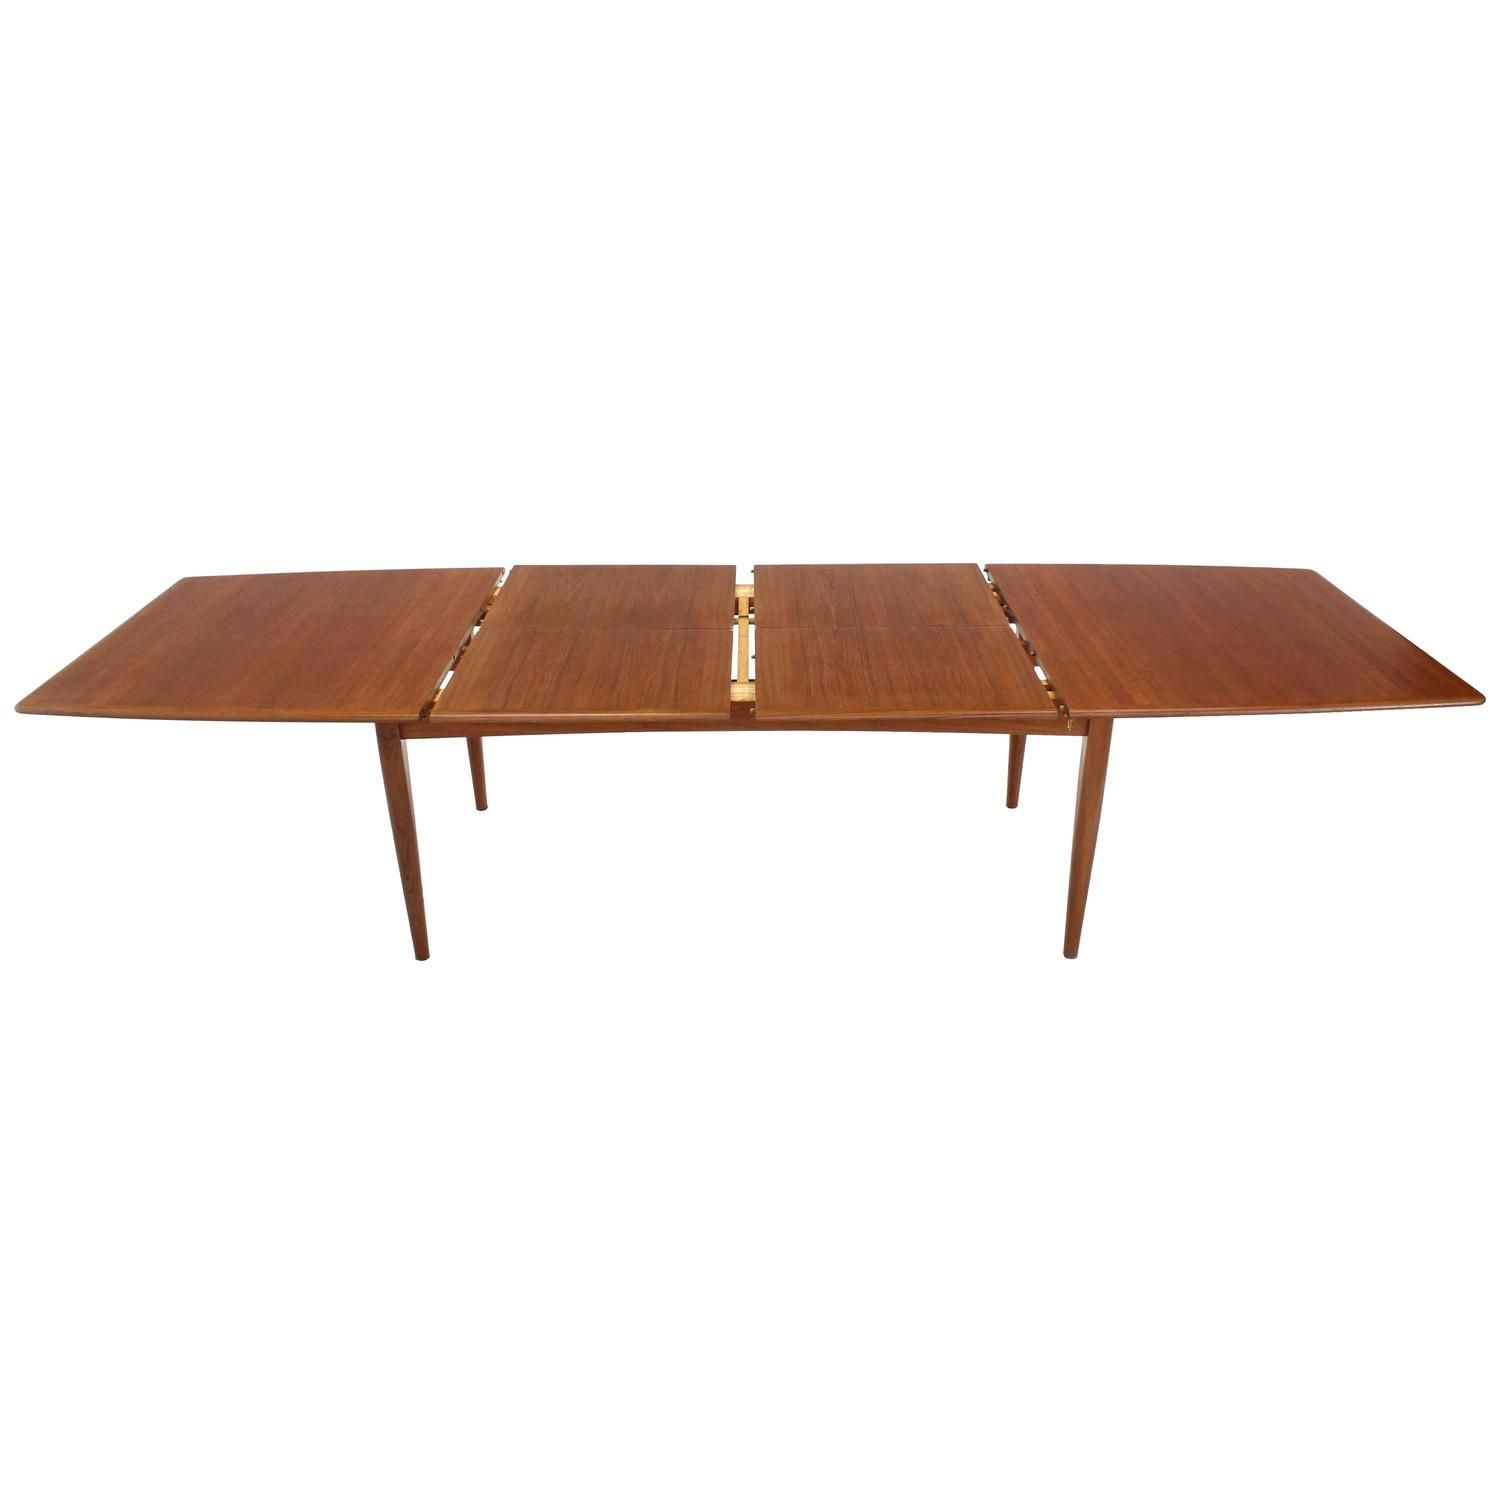 Large Danish Mid Century Modern Teak Dining Table With Two Pop Up